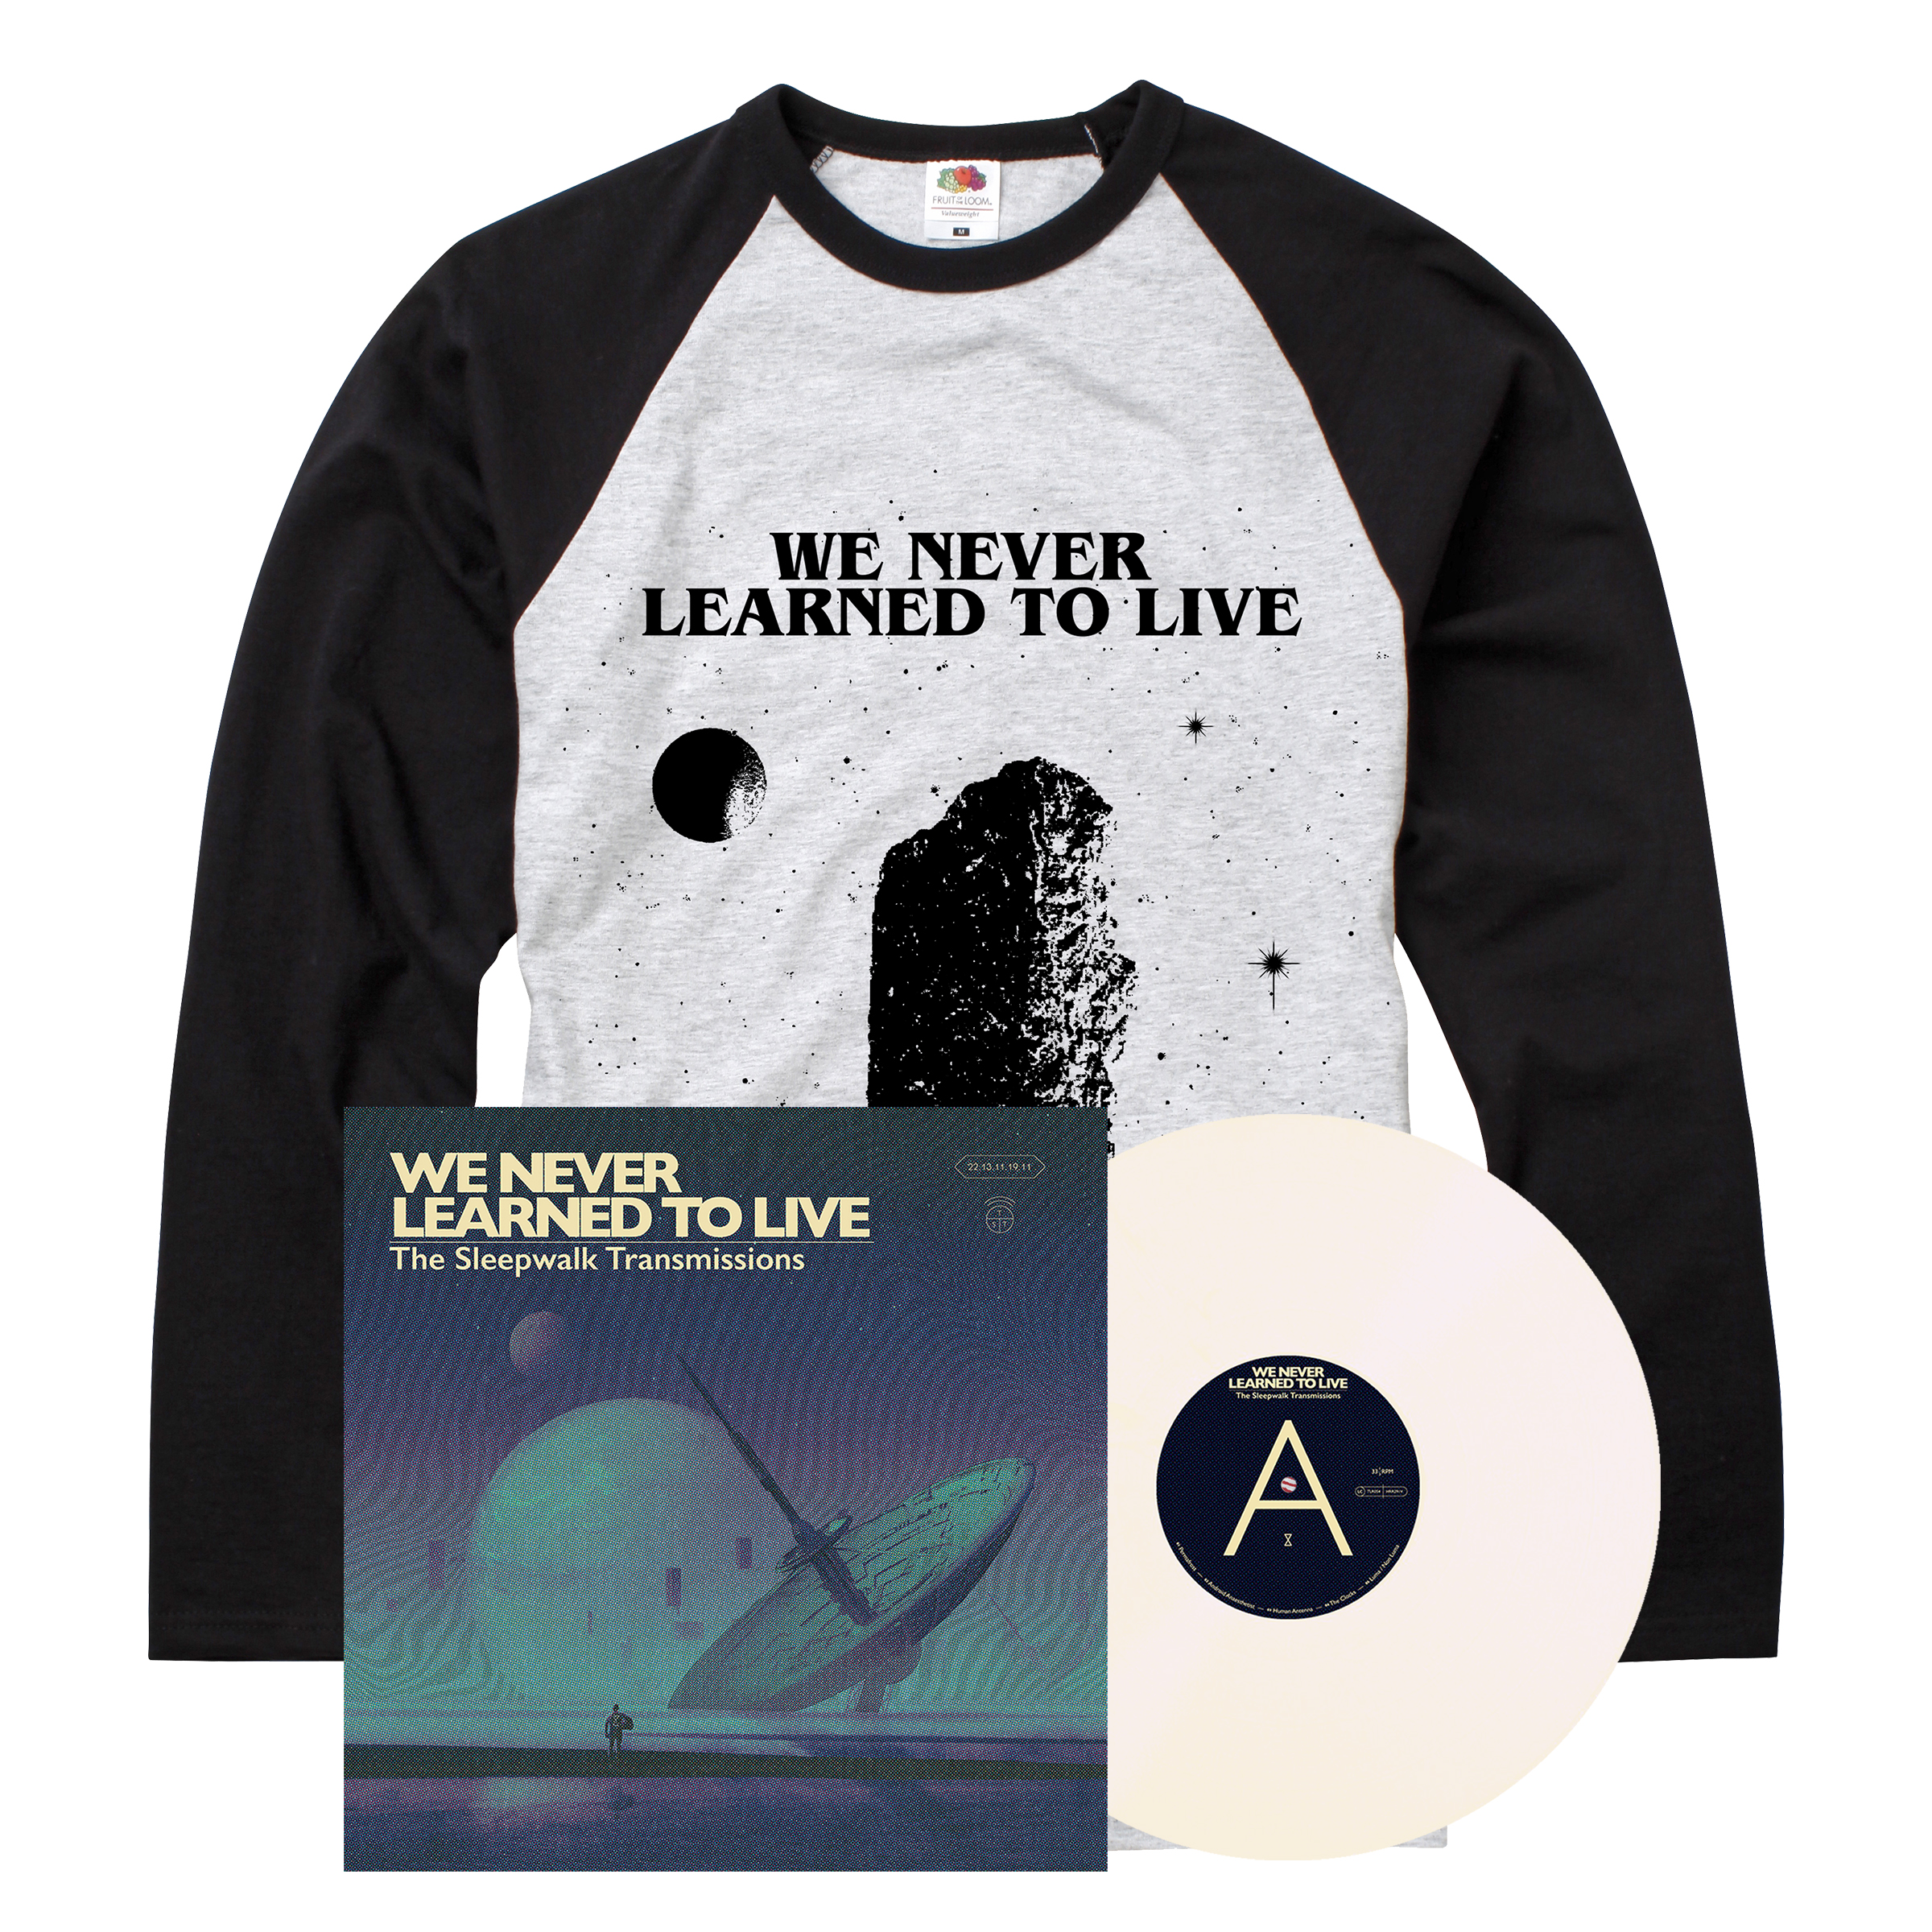 We Never Learned To Live - The Sleepwalk Transmissions LP + long sleeve